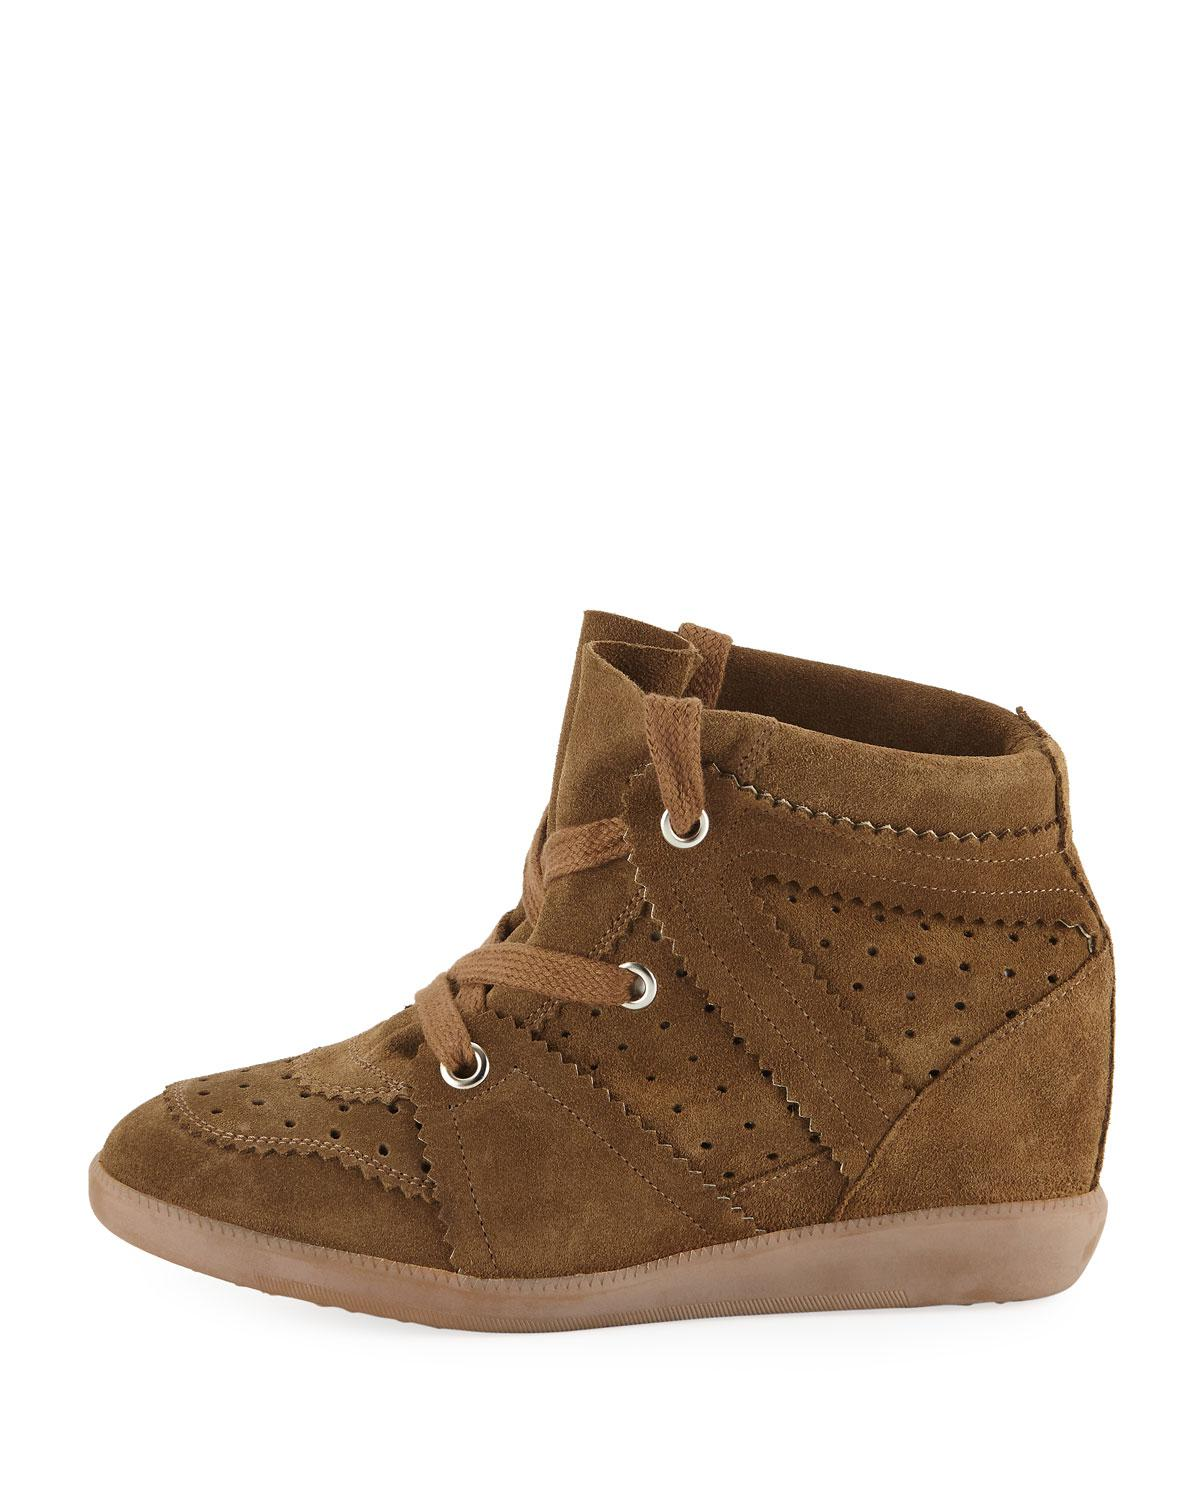 e3381d2331e Lyst - Isabel Marant The Bobby Suede Wedge Sneakers in Brown